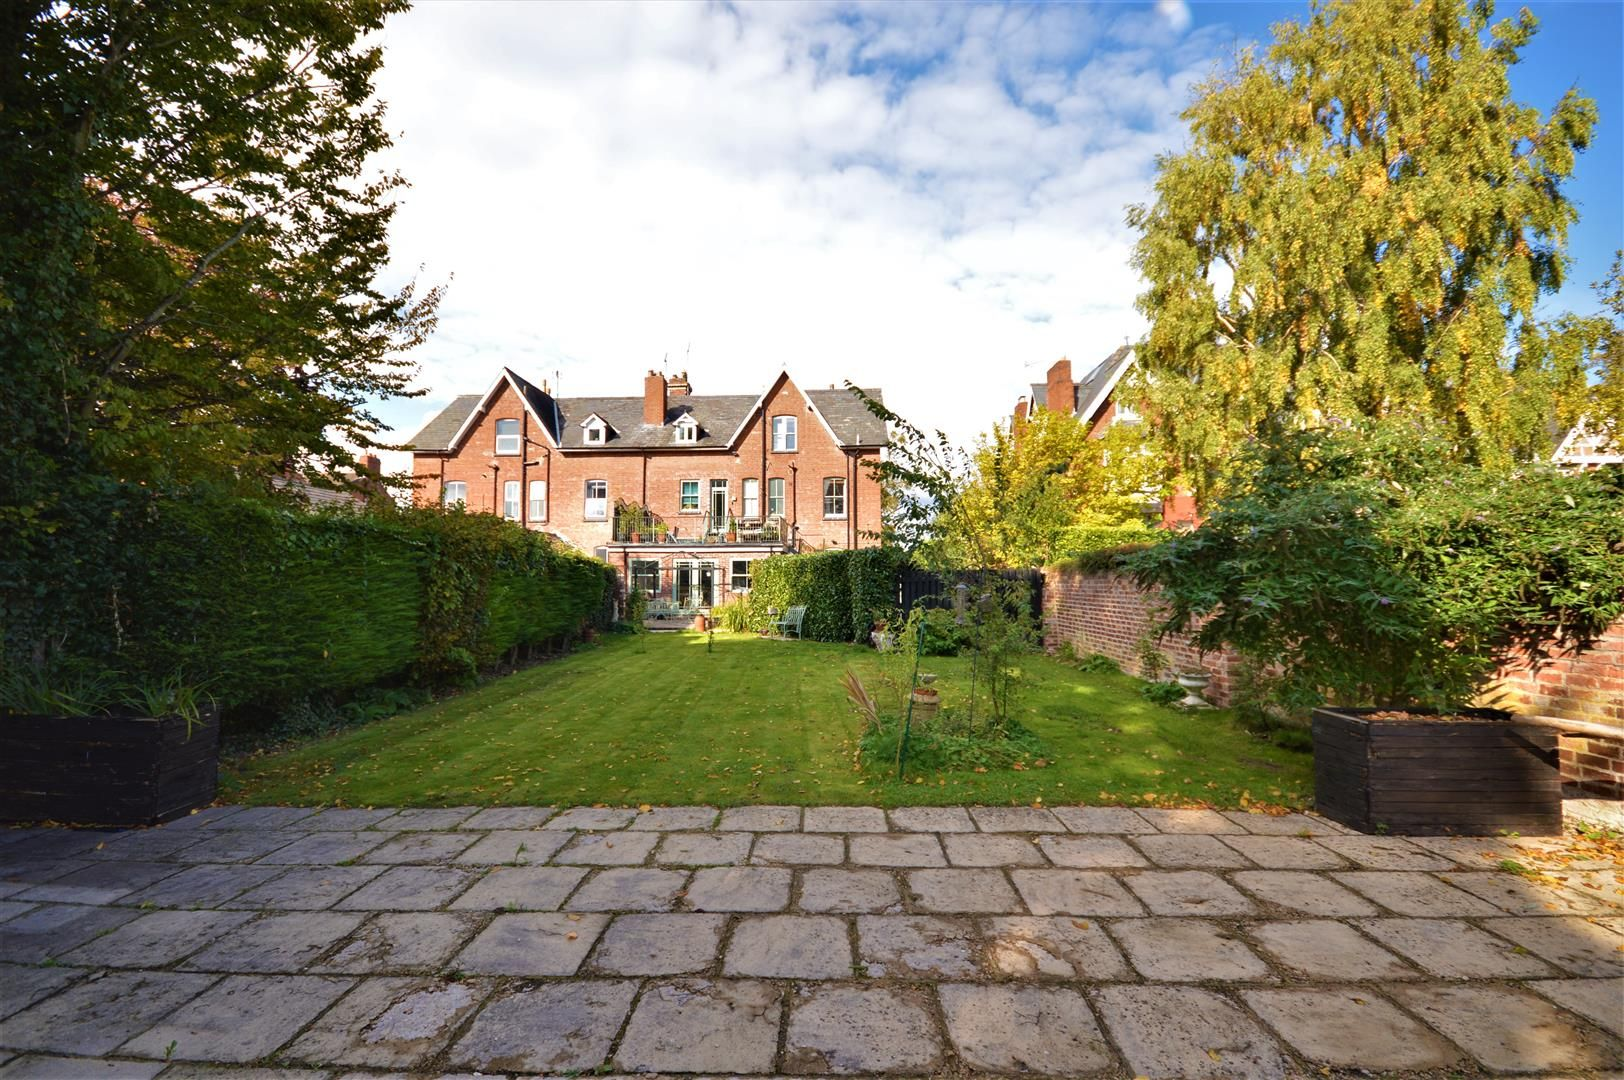 7 bed house for sale, HR1